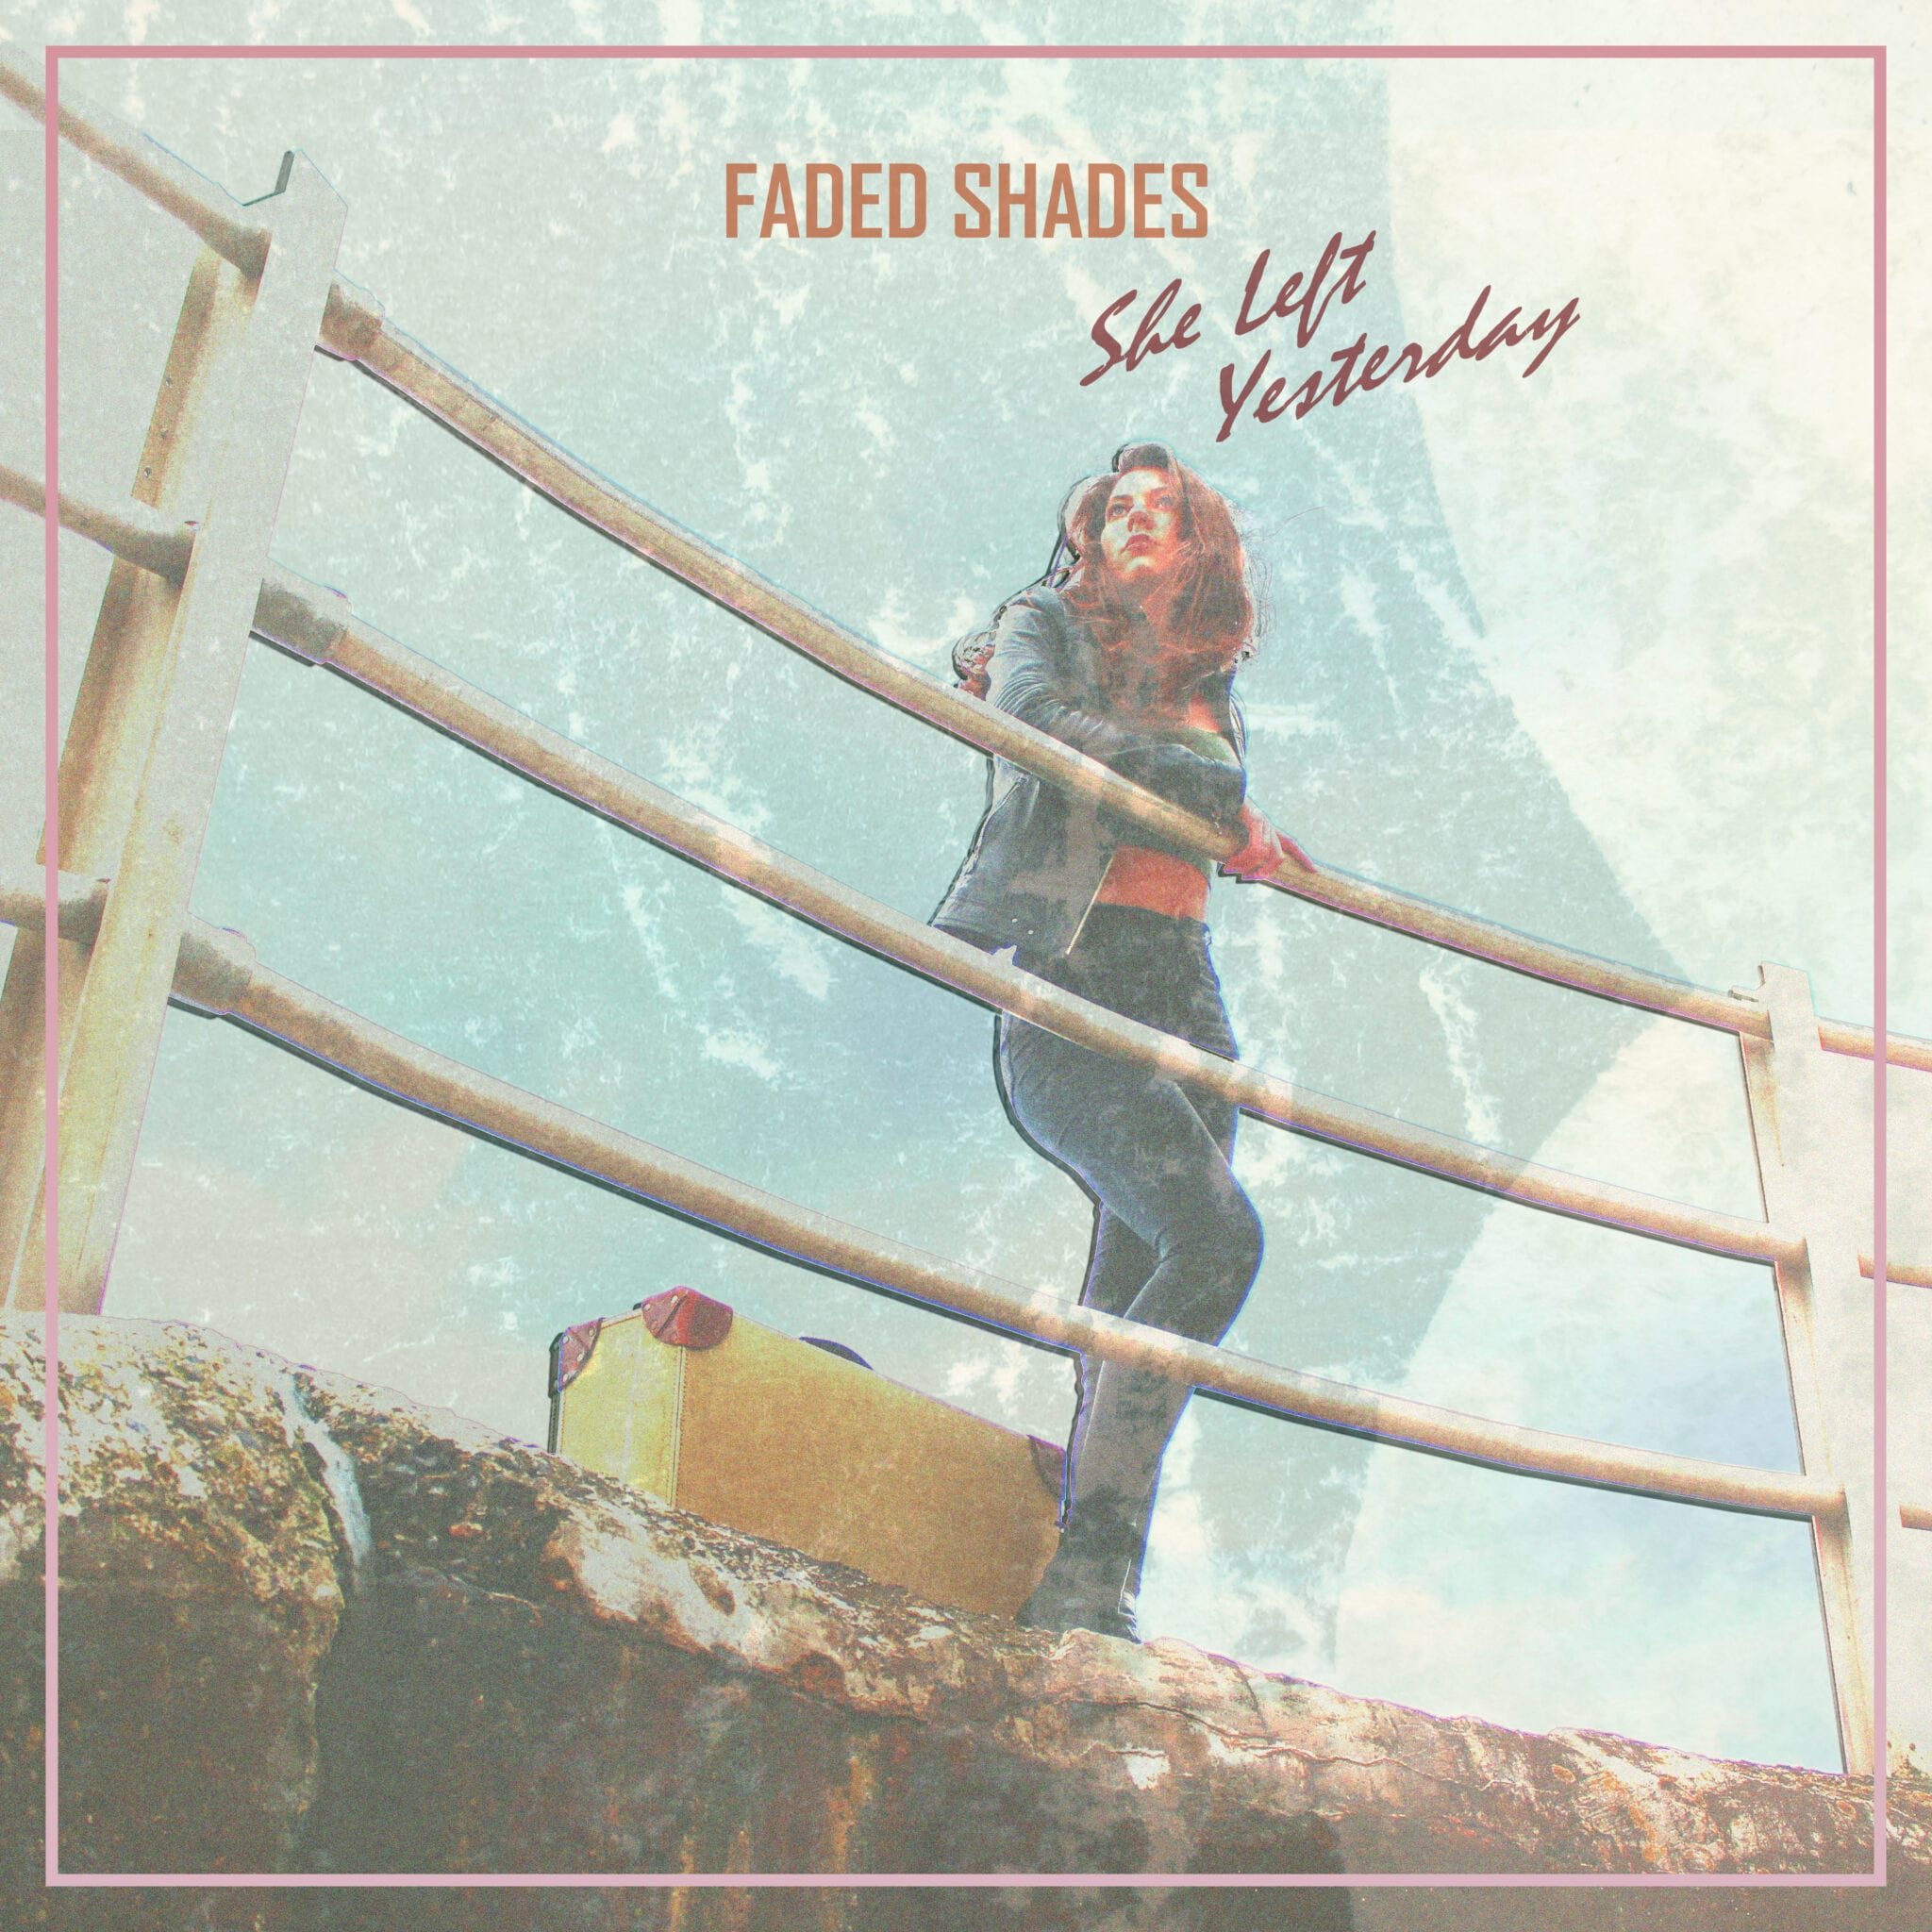 Faded Shades Alternative Rock Release Catchy New Single She Left Yesterday